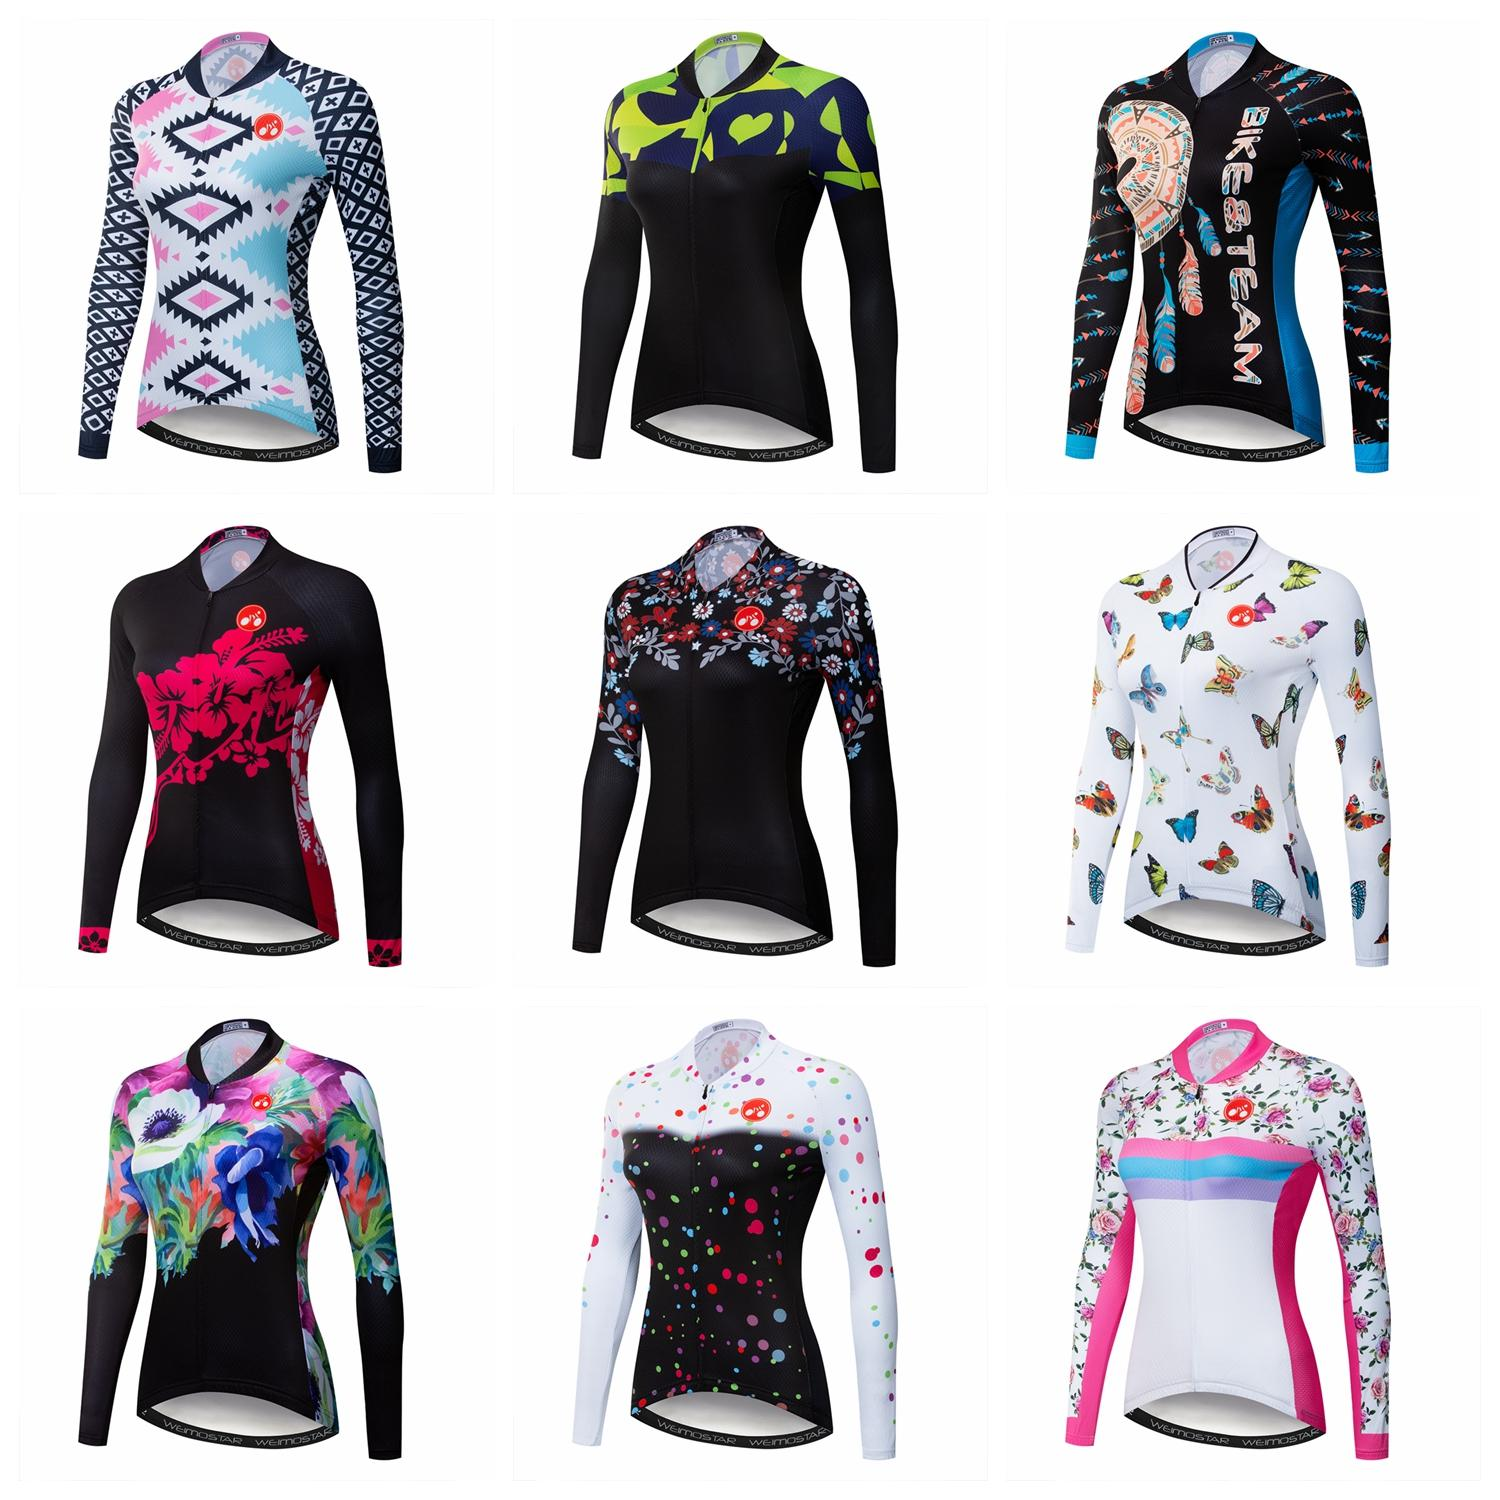 Women MTB Road Cycling Jersey Winter Long Sleeve Sport Bicycle Clothing Ropa Ciclismo Maillot Outdoor Bike Jersey Shirts Tops